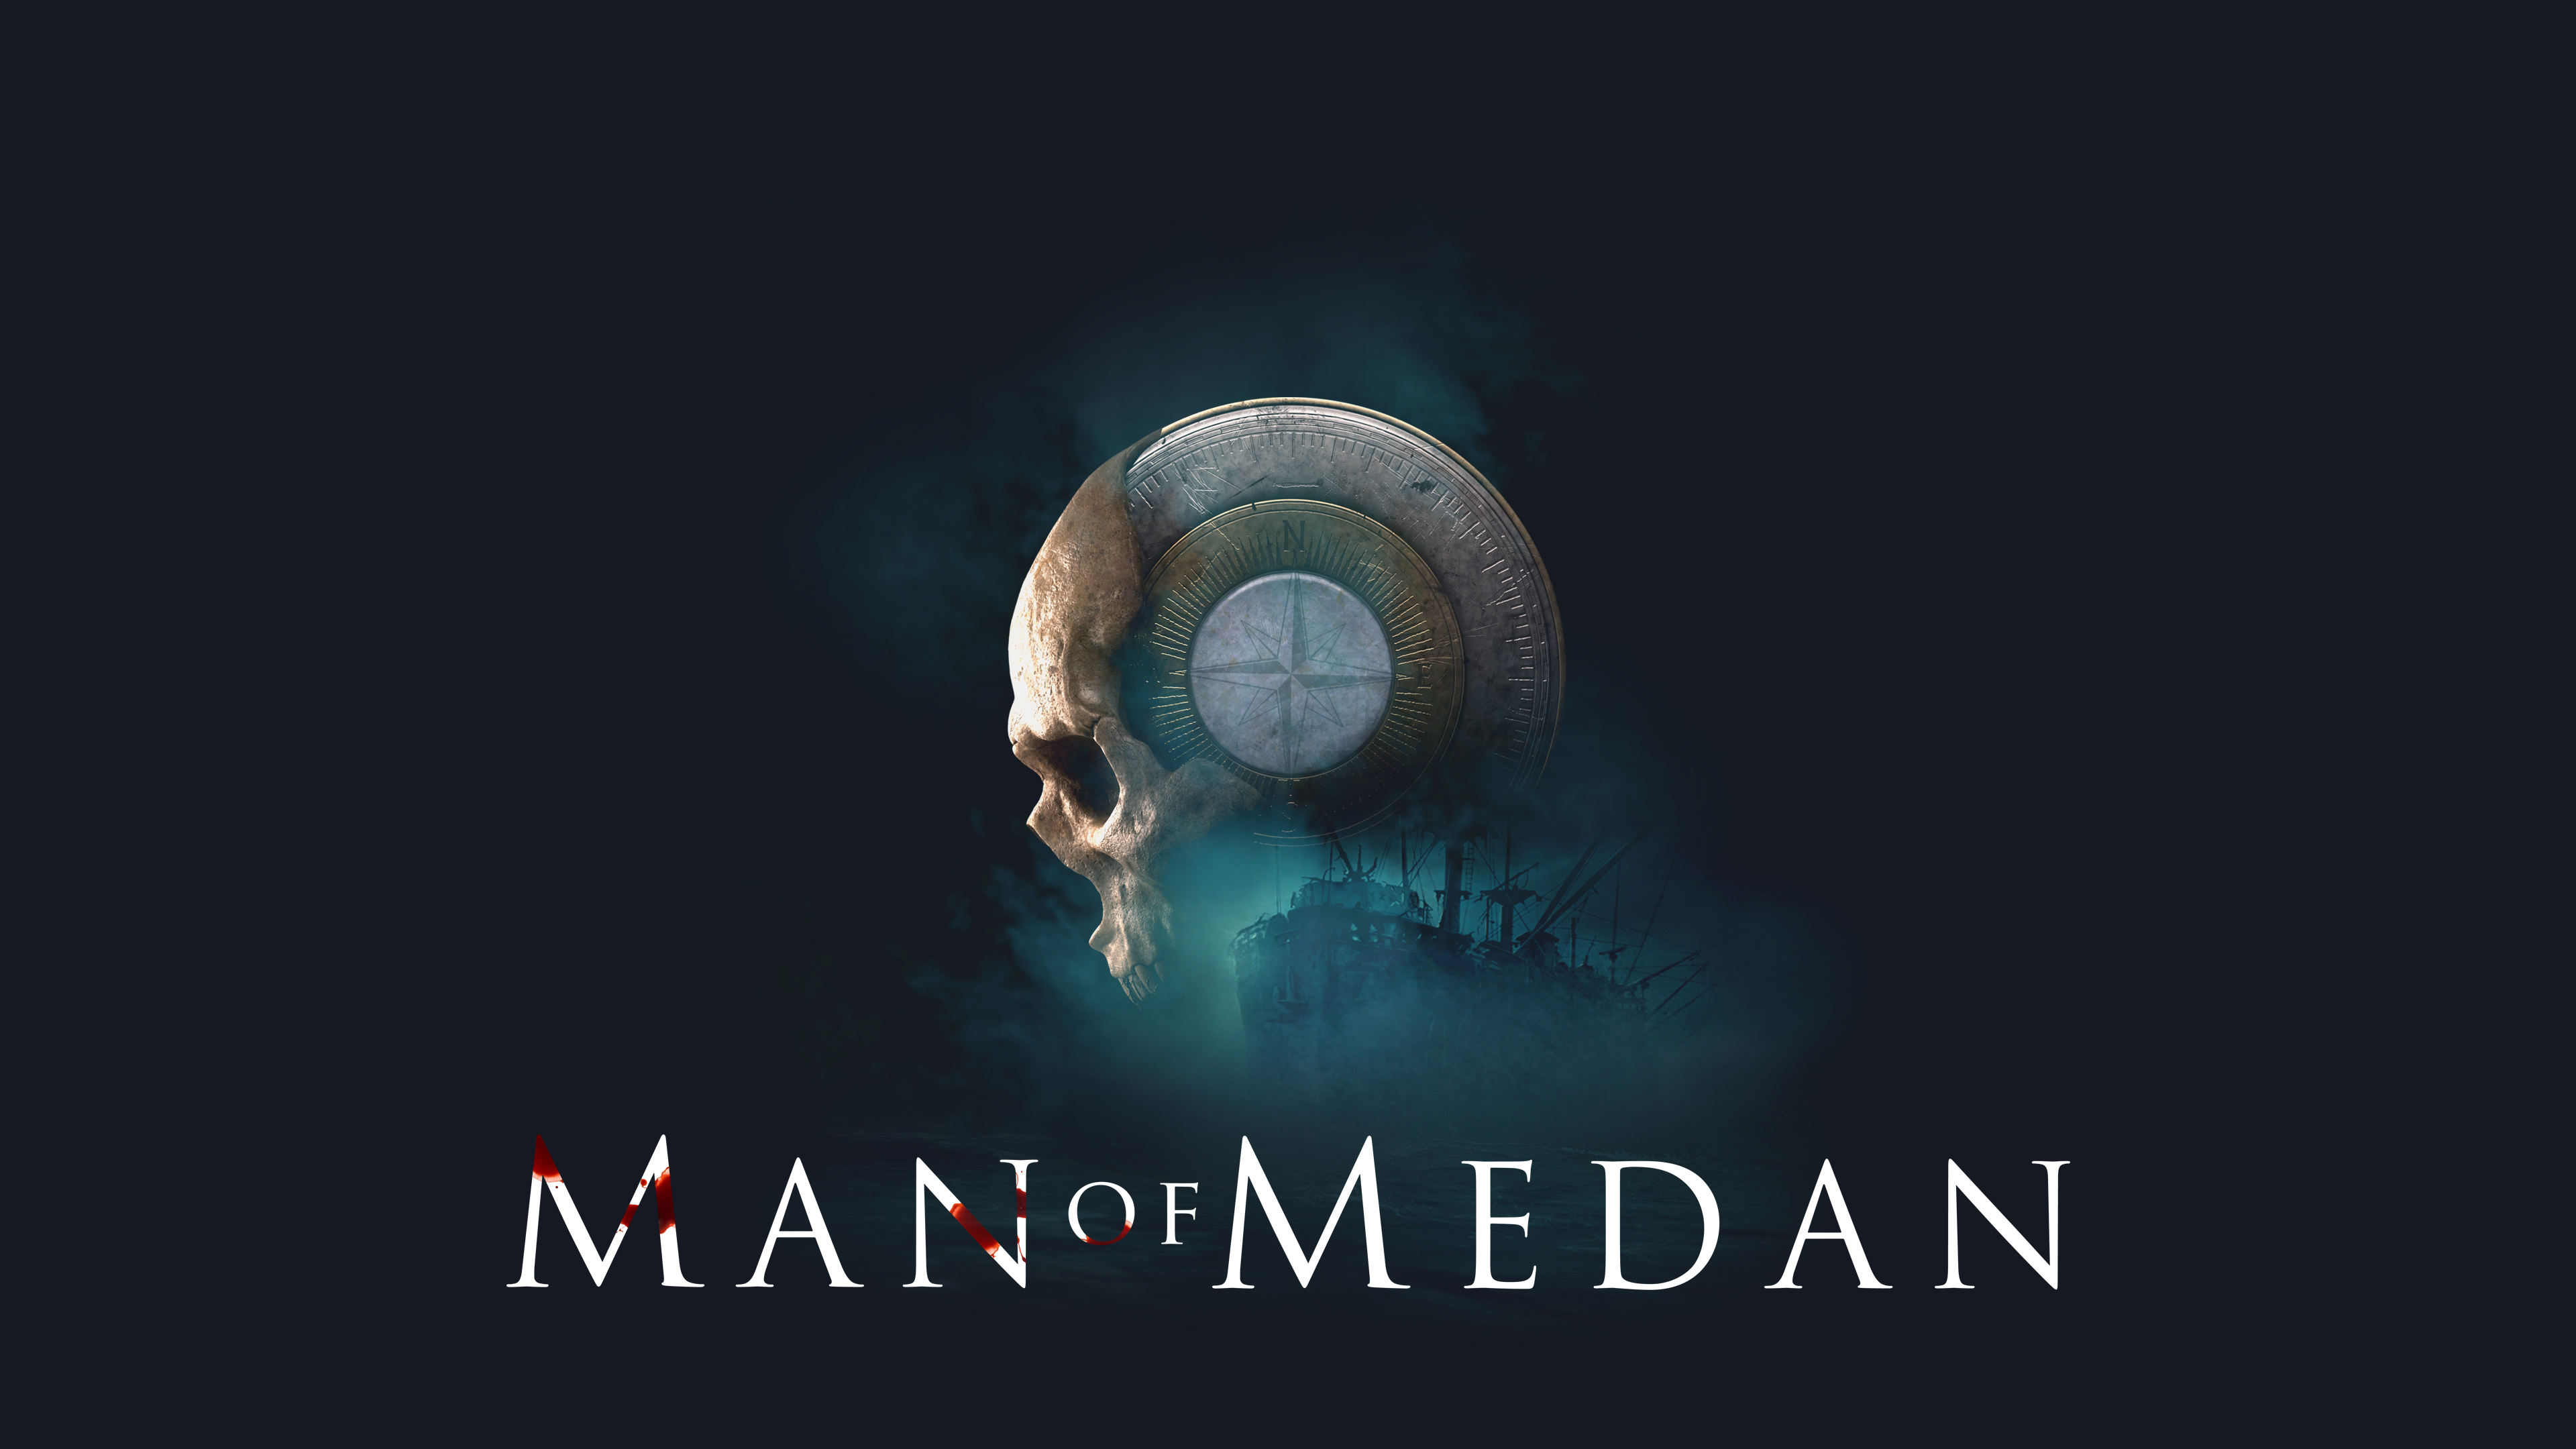 the dark pictures man of medan 2019 1537691839 - The Dark Pictures Man Of Medan 2019 - the dark pictures man of medan wallpapers, skull wallpapers, hd-wallpapers, games wallpapers, 4k-wallpapers, 2019 games wallpapers